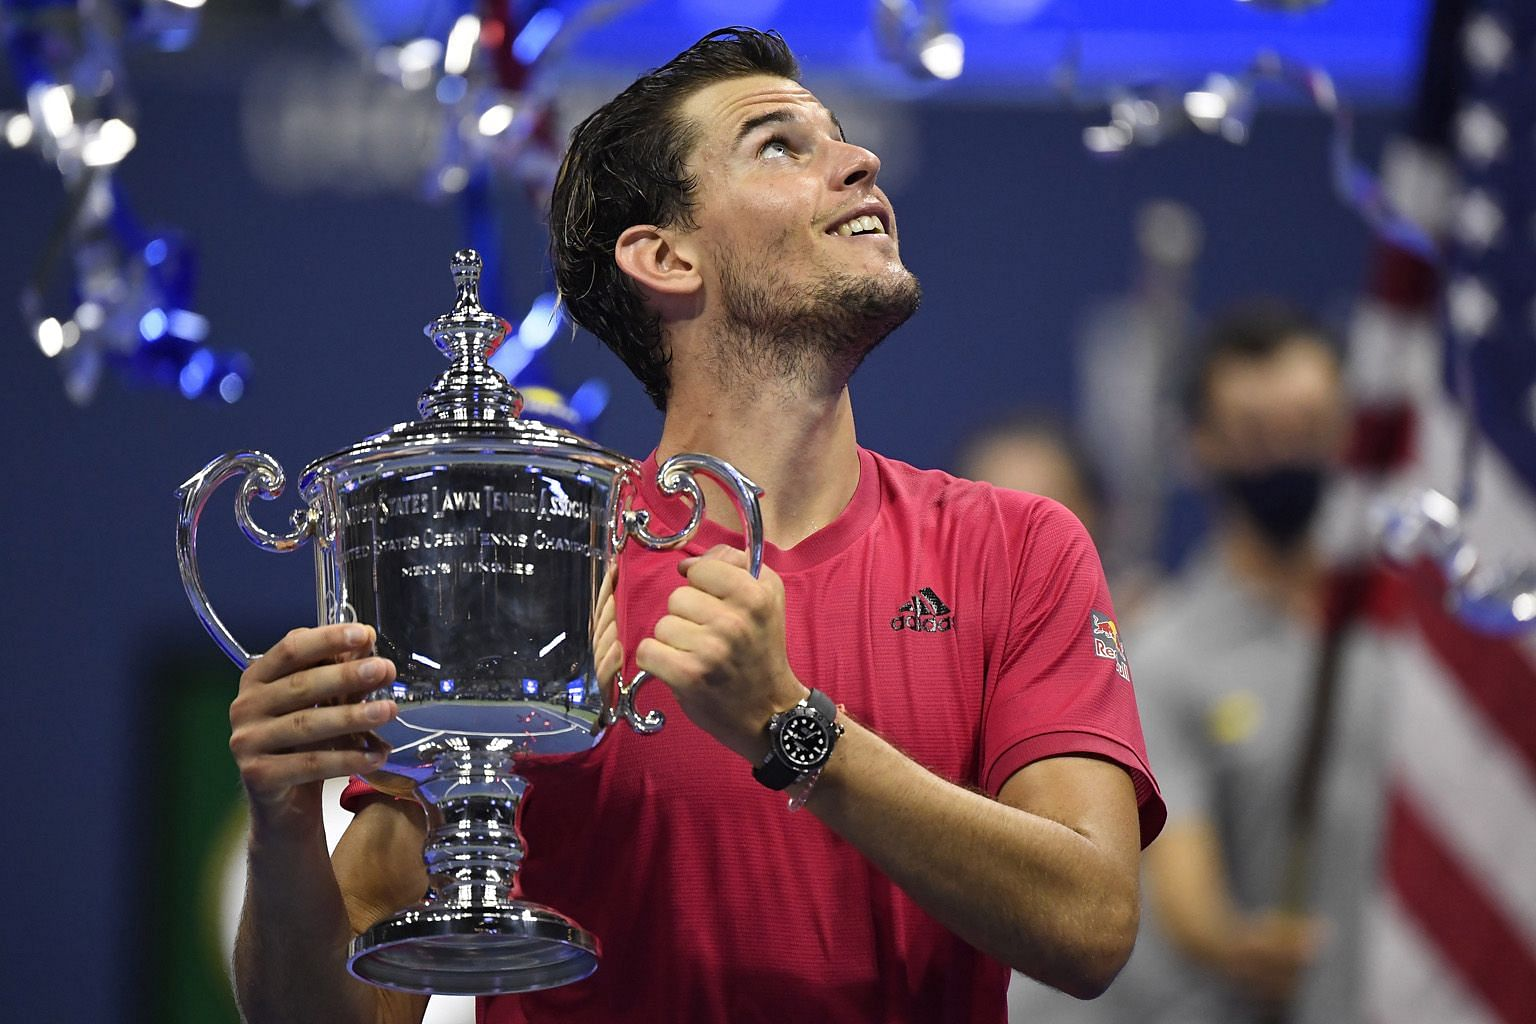 Dominic Thiem of Austria celebrates with the US Open winner's trophy after beating Germany's Alexander Zverev in the men's singles final. He is the first player outside of Rafael Nadal, Novak Djokovic and Roger Federer to win a Grand Slam in four yea